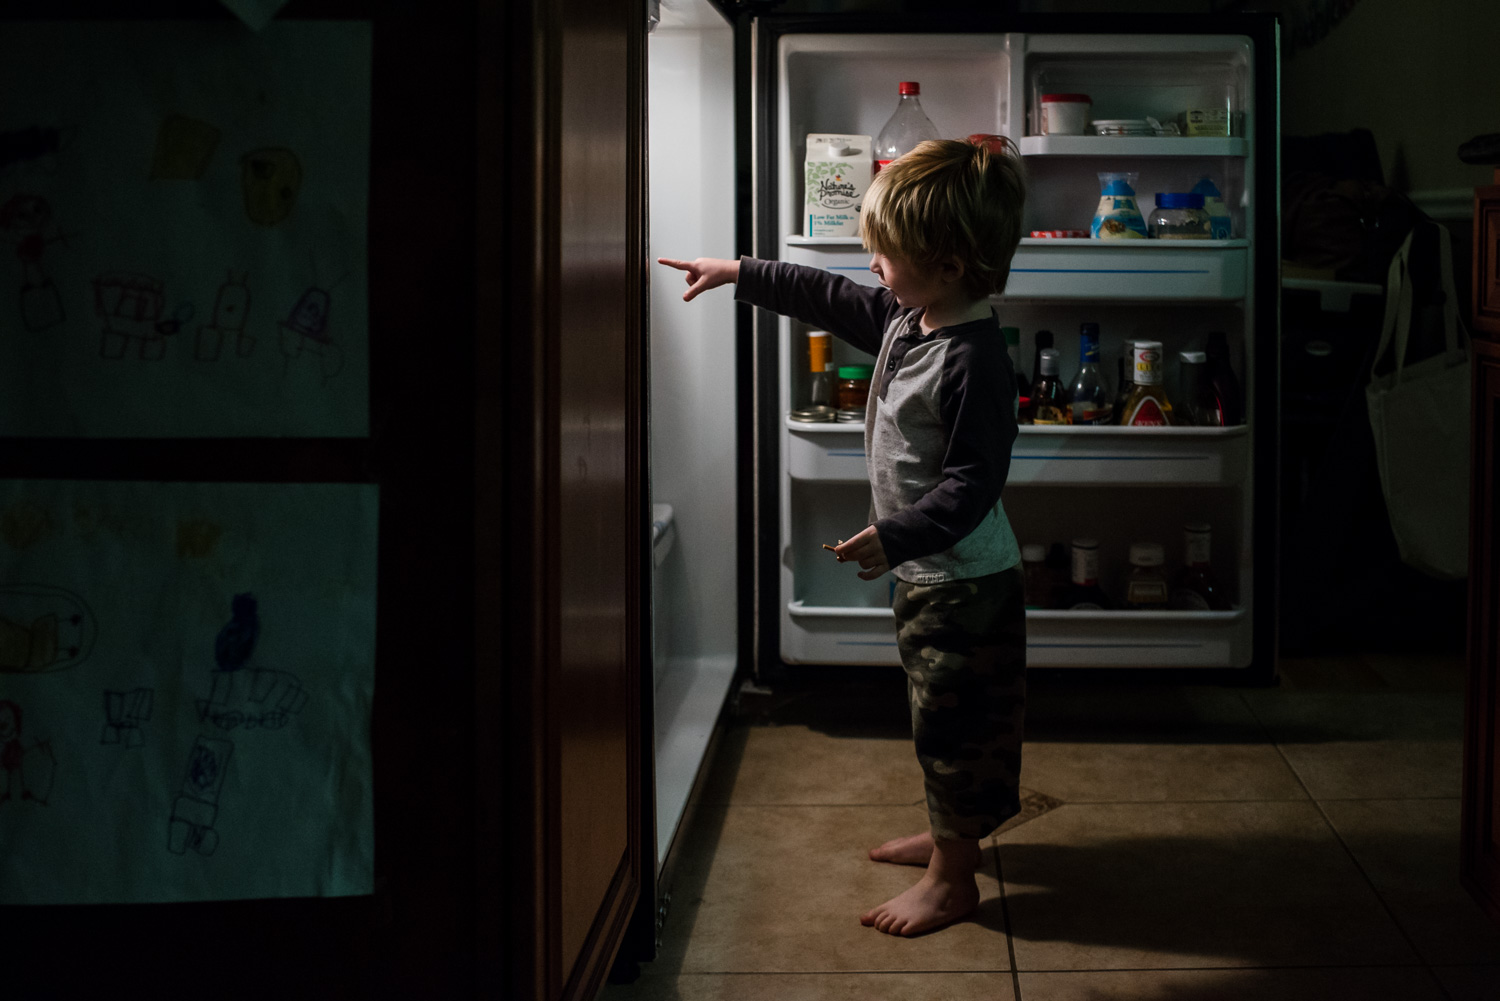 Little boy looking in the refrigerator